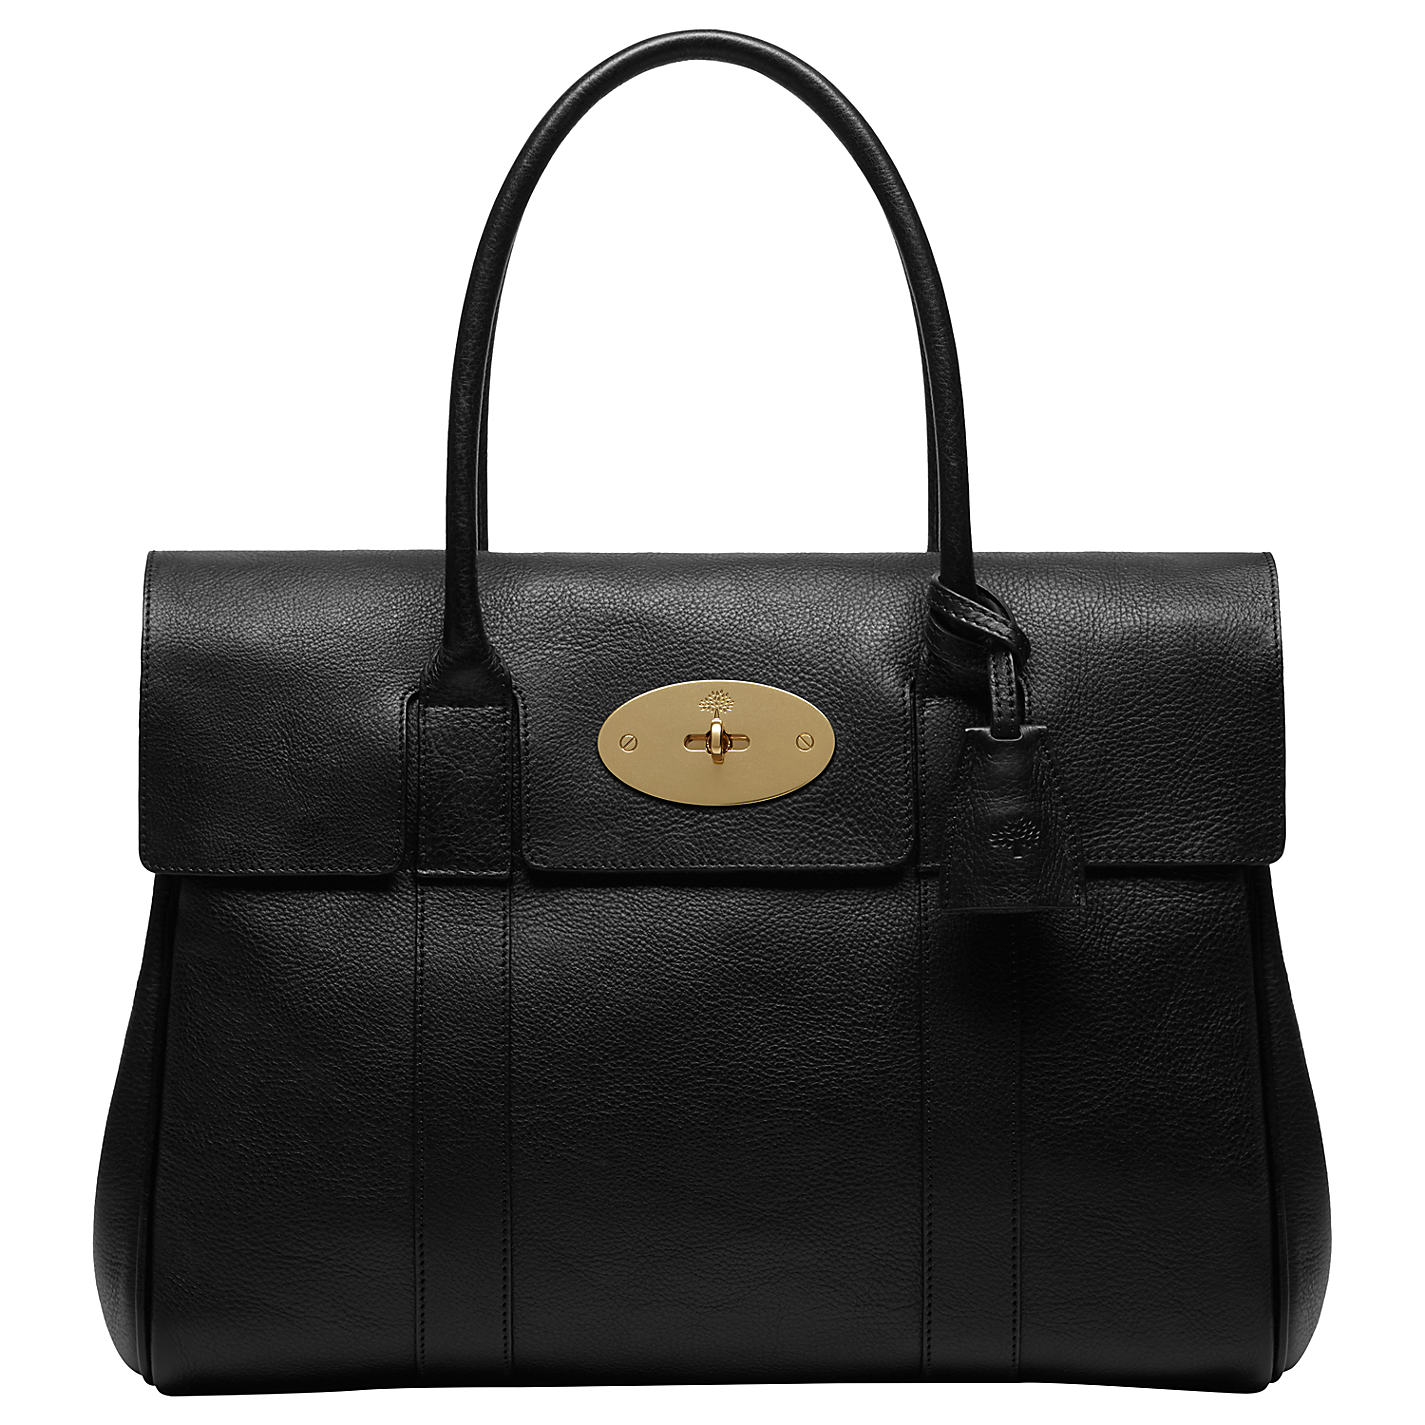 Mulberry handbags on sale handbags 2018 for The bayswater